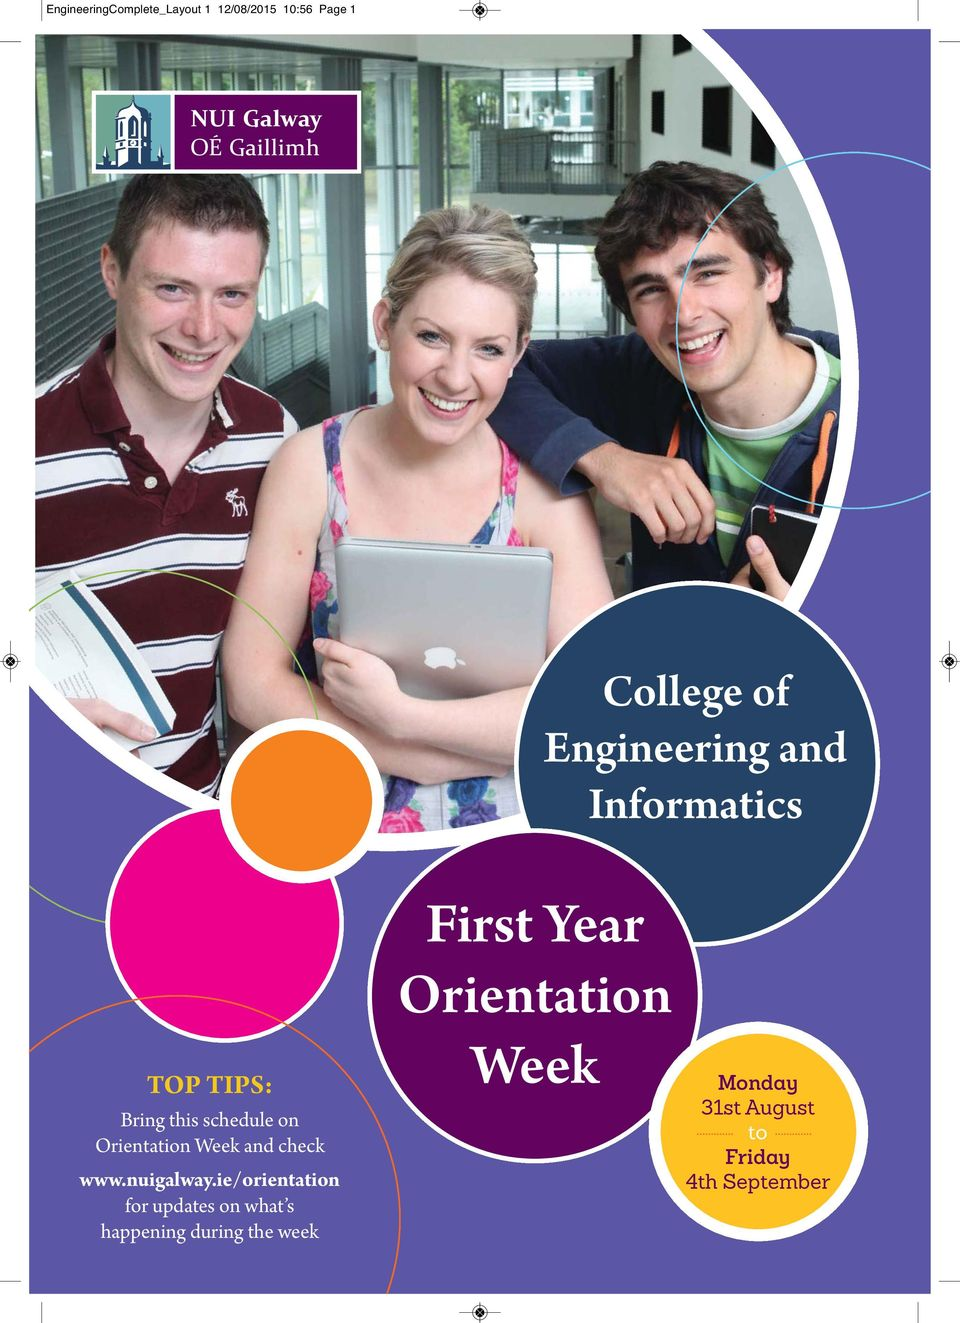 schedule on Orientation Week and check www.nuigalway.